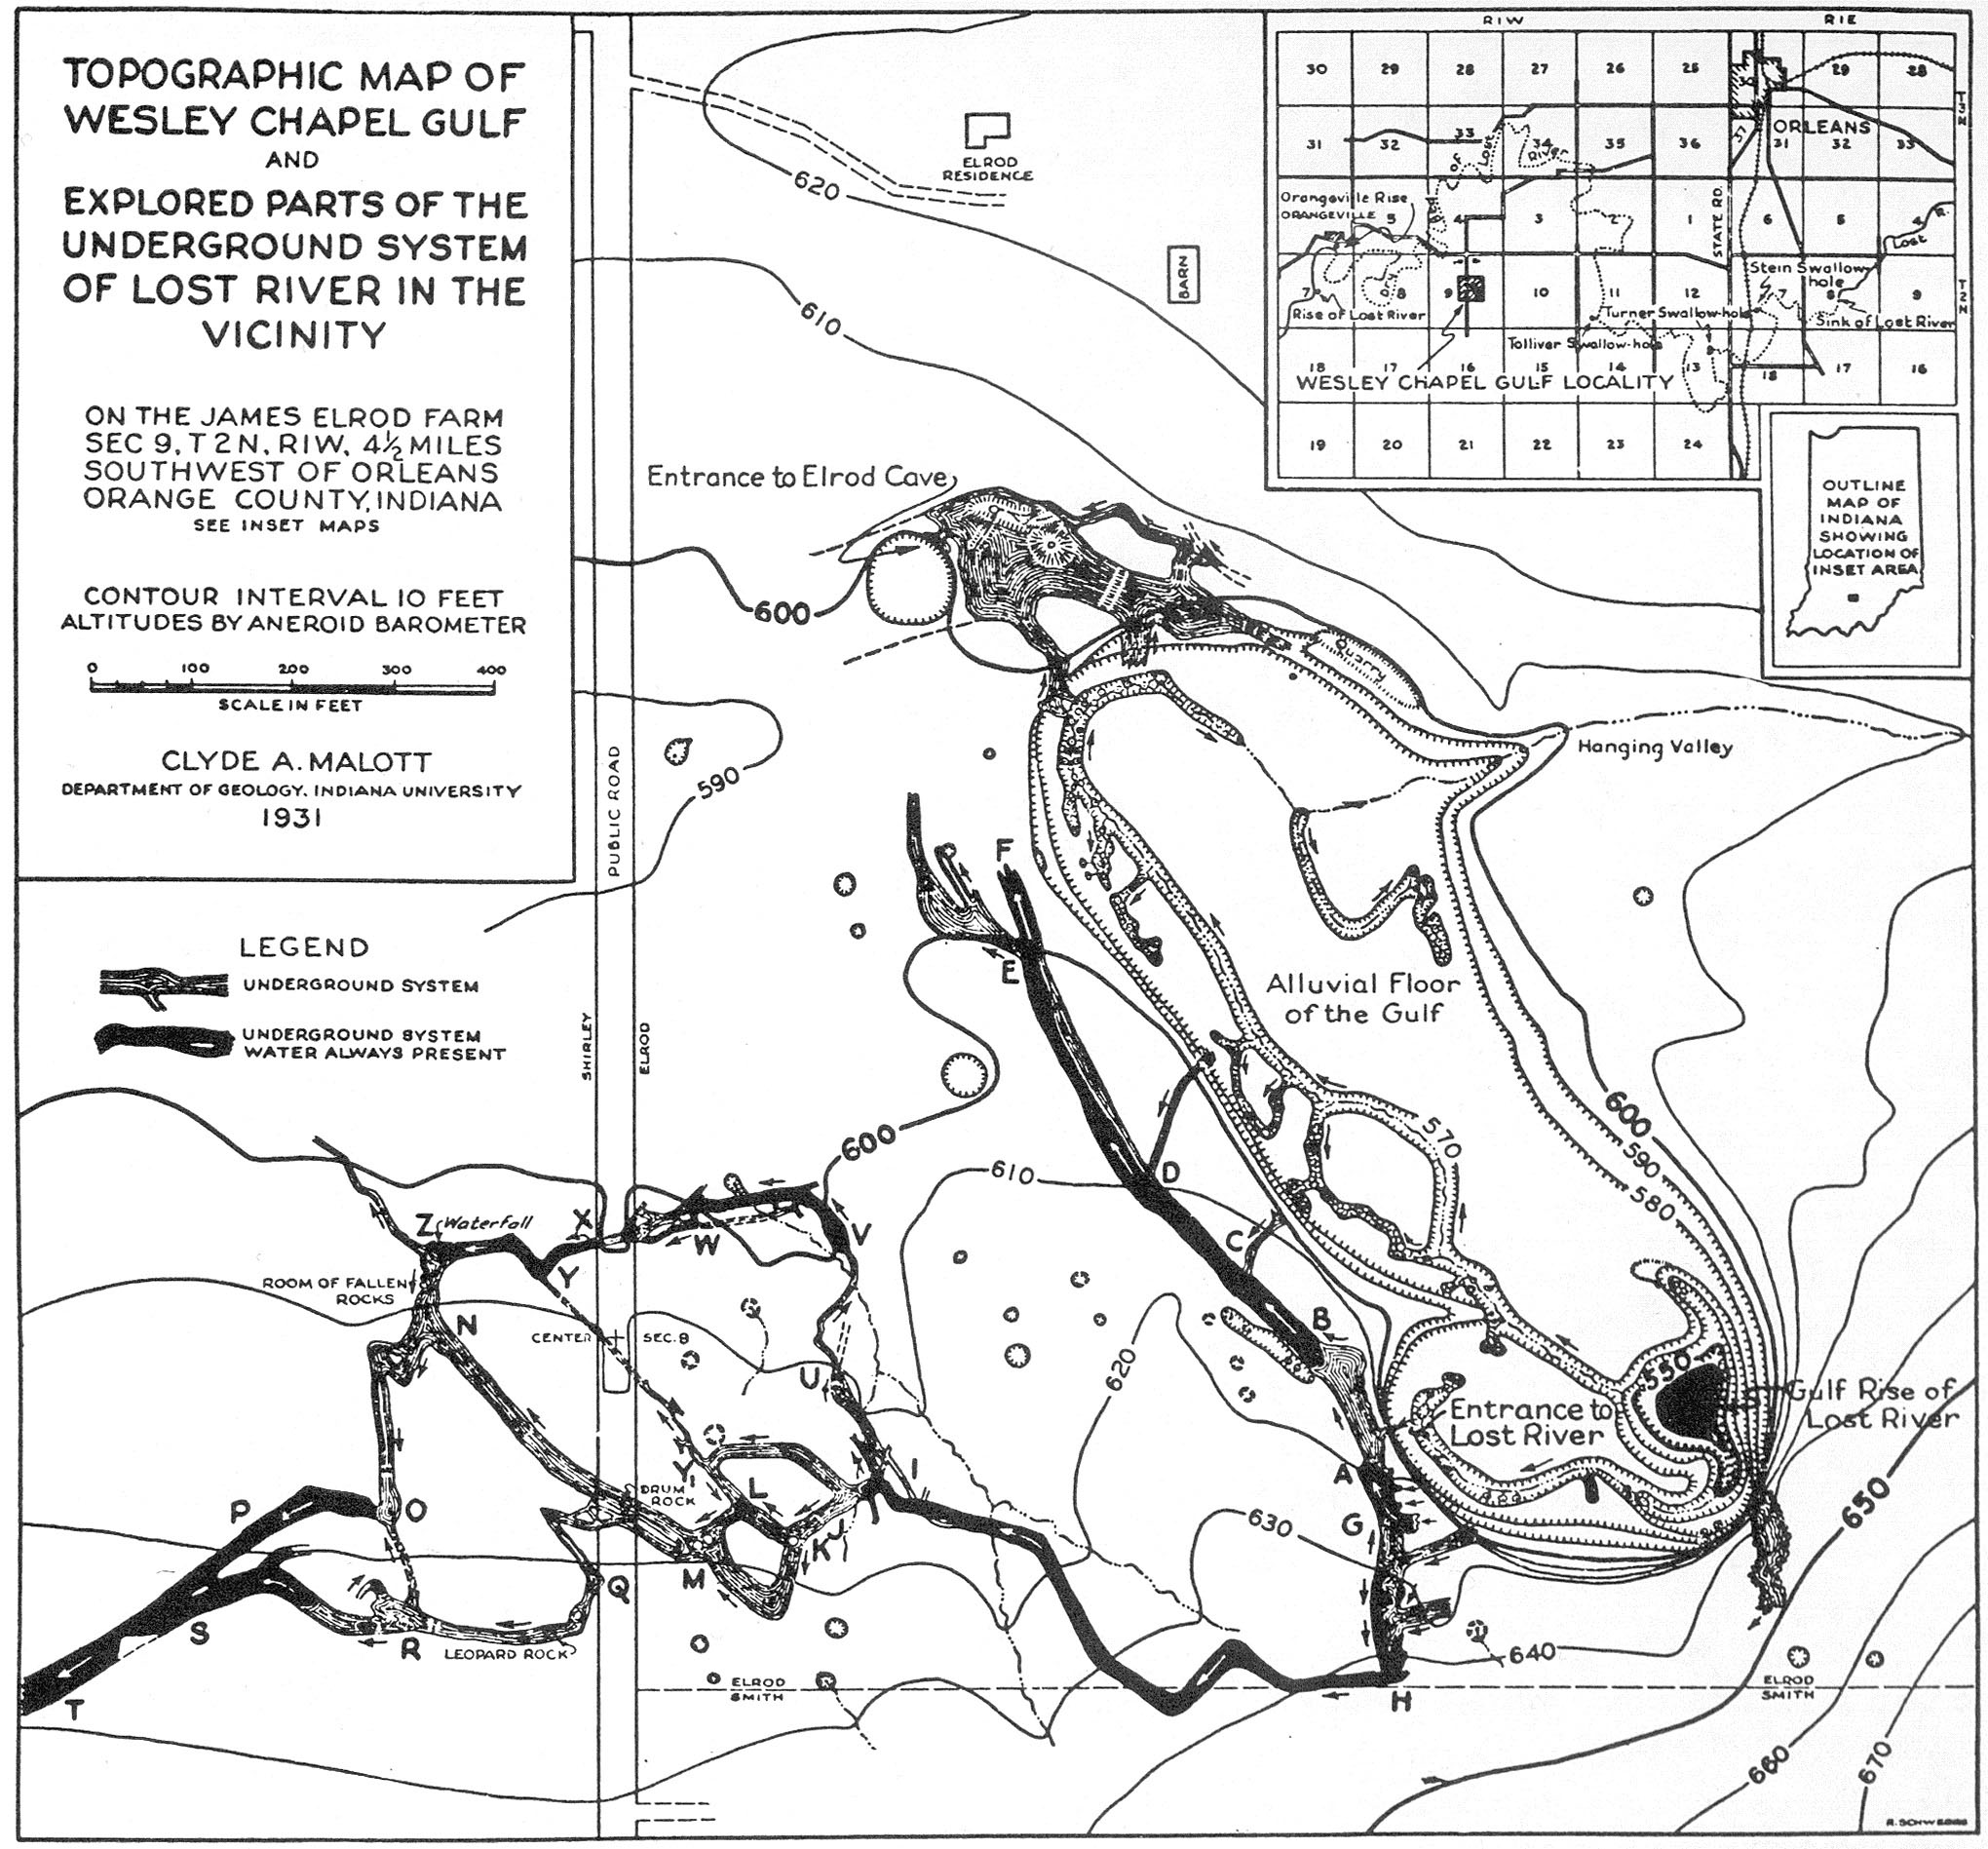 A sketch map of Wesley Chapel Gulf in Orange County, Indiana, originally drawn by